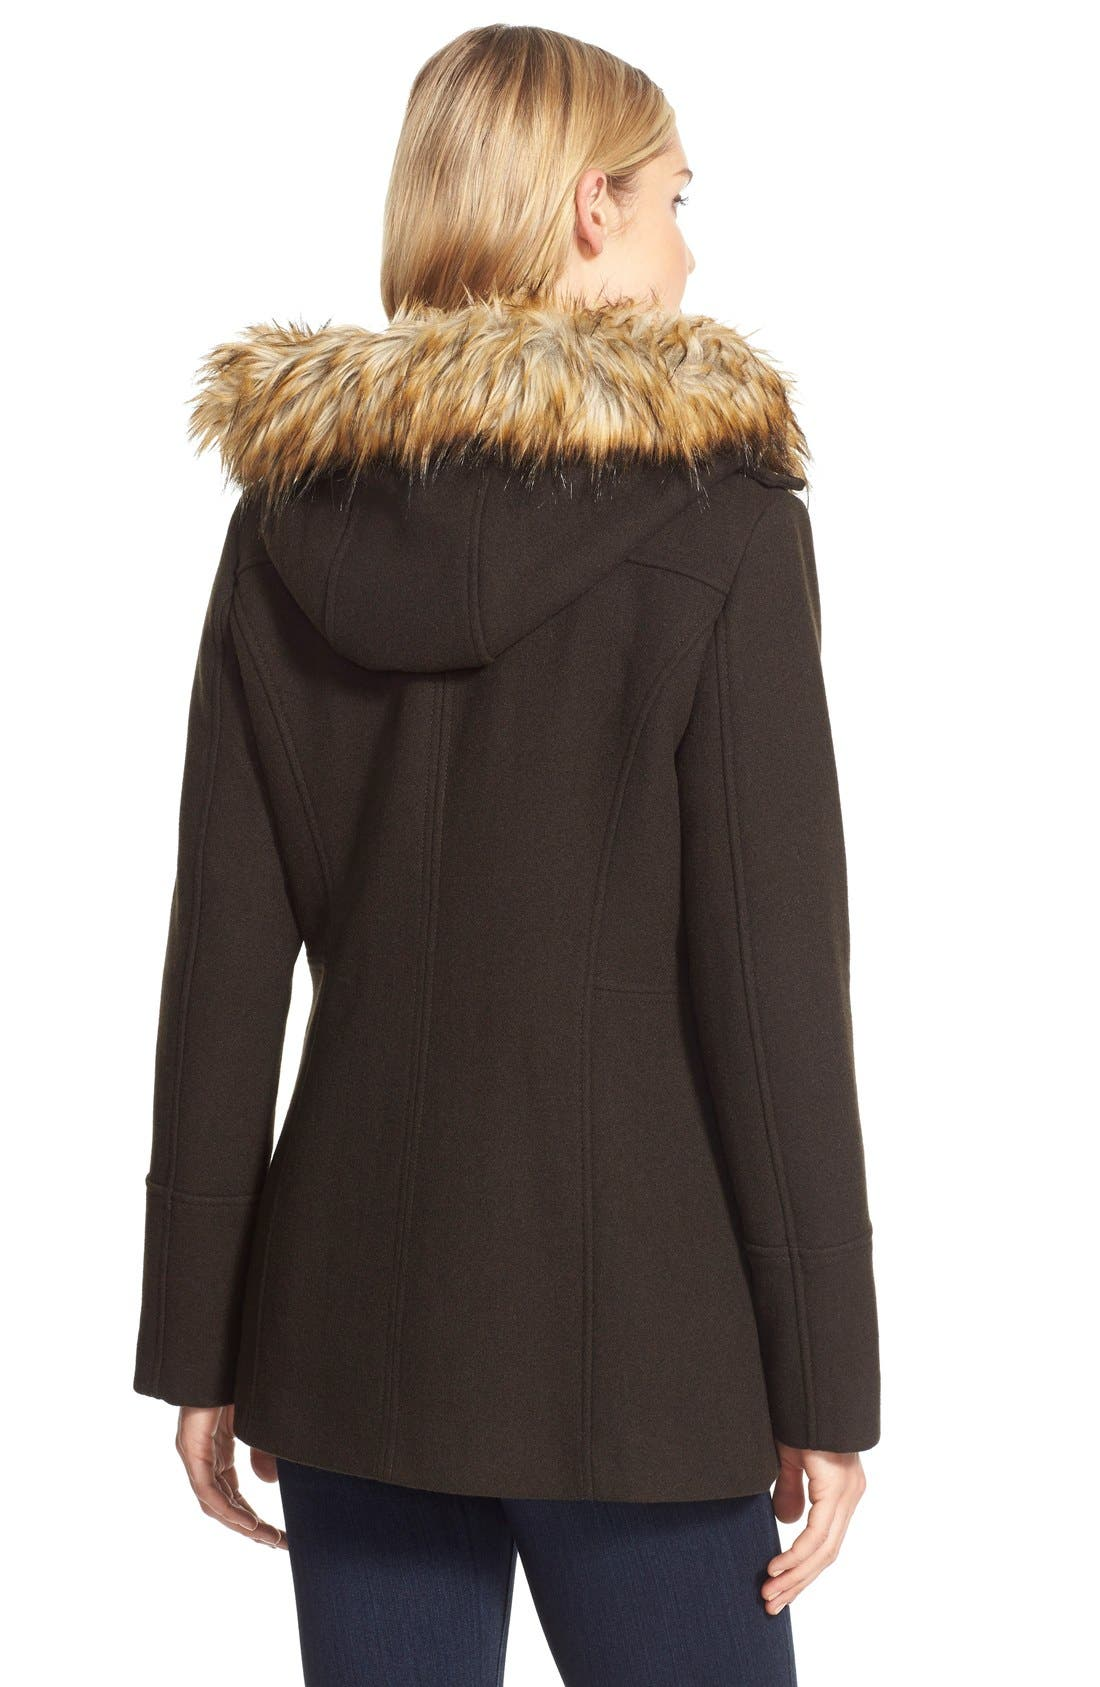 Alternate Image 2  - <br> MICHAEL Michael Kors Belted Asymmetrical Wool Blend Coat with Faux Fur<br>